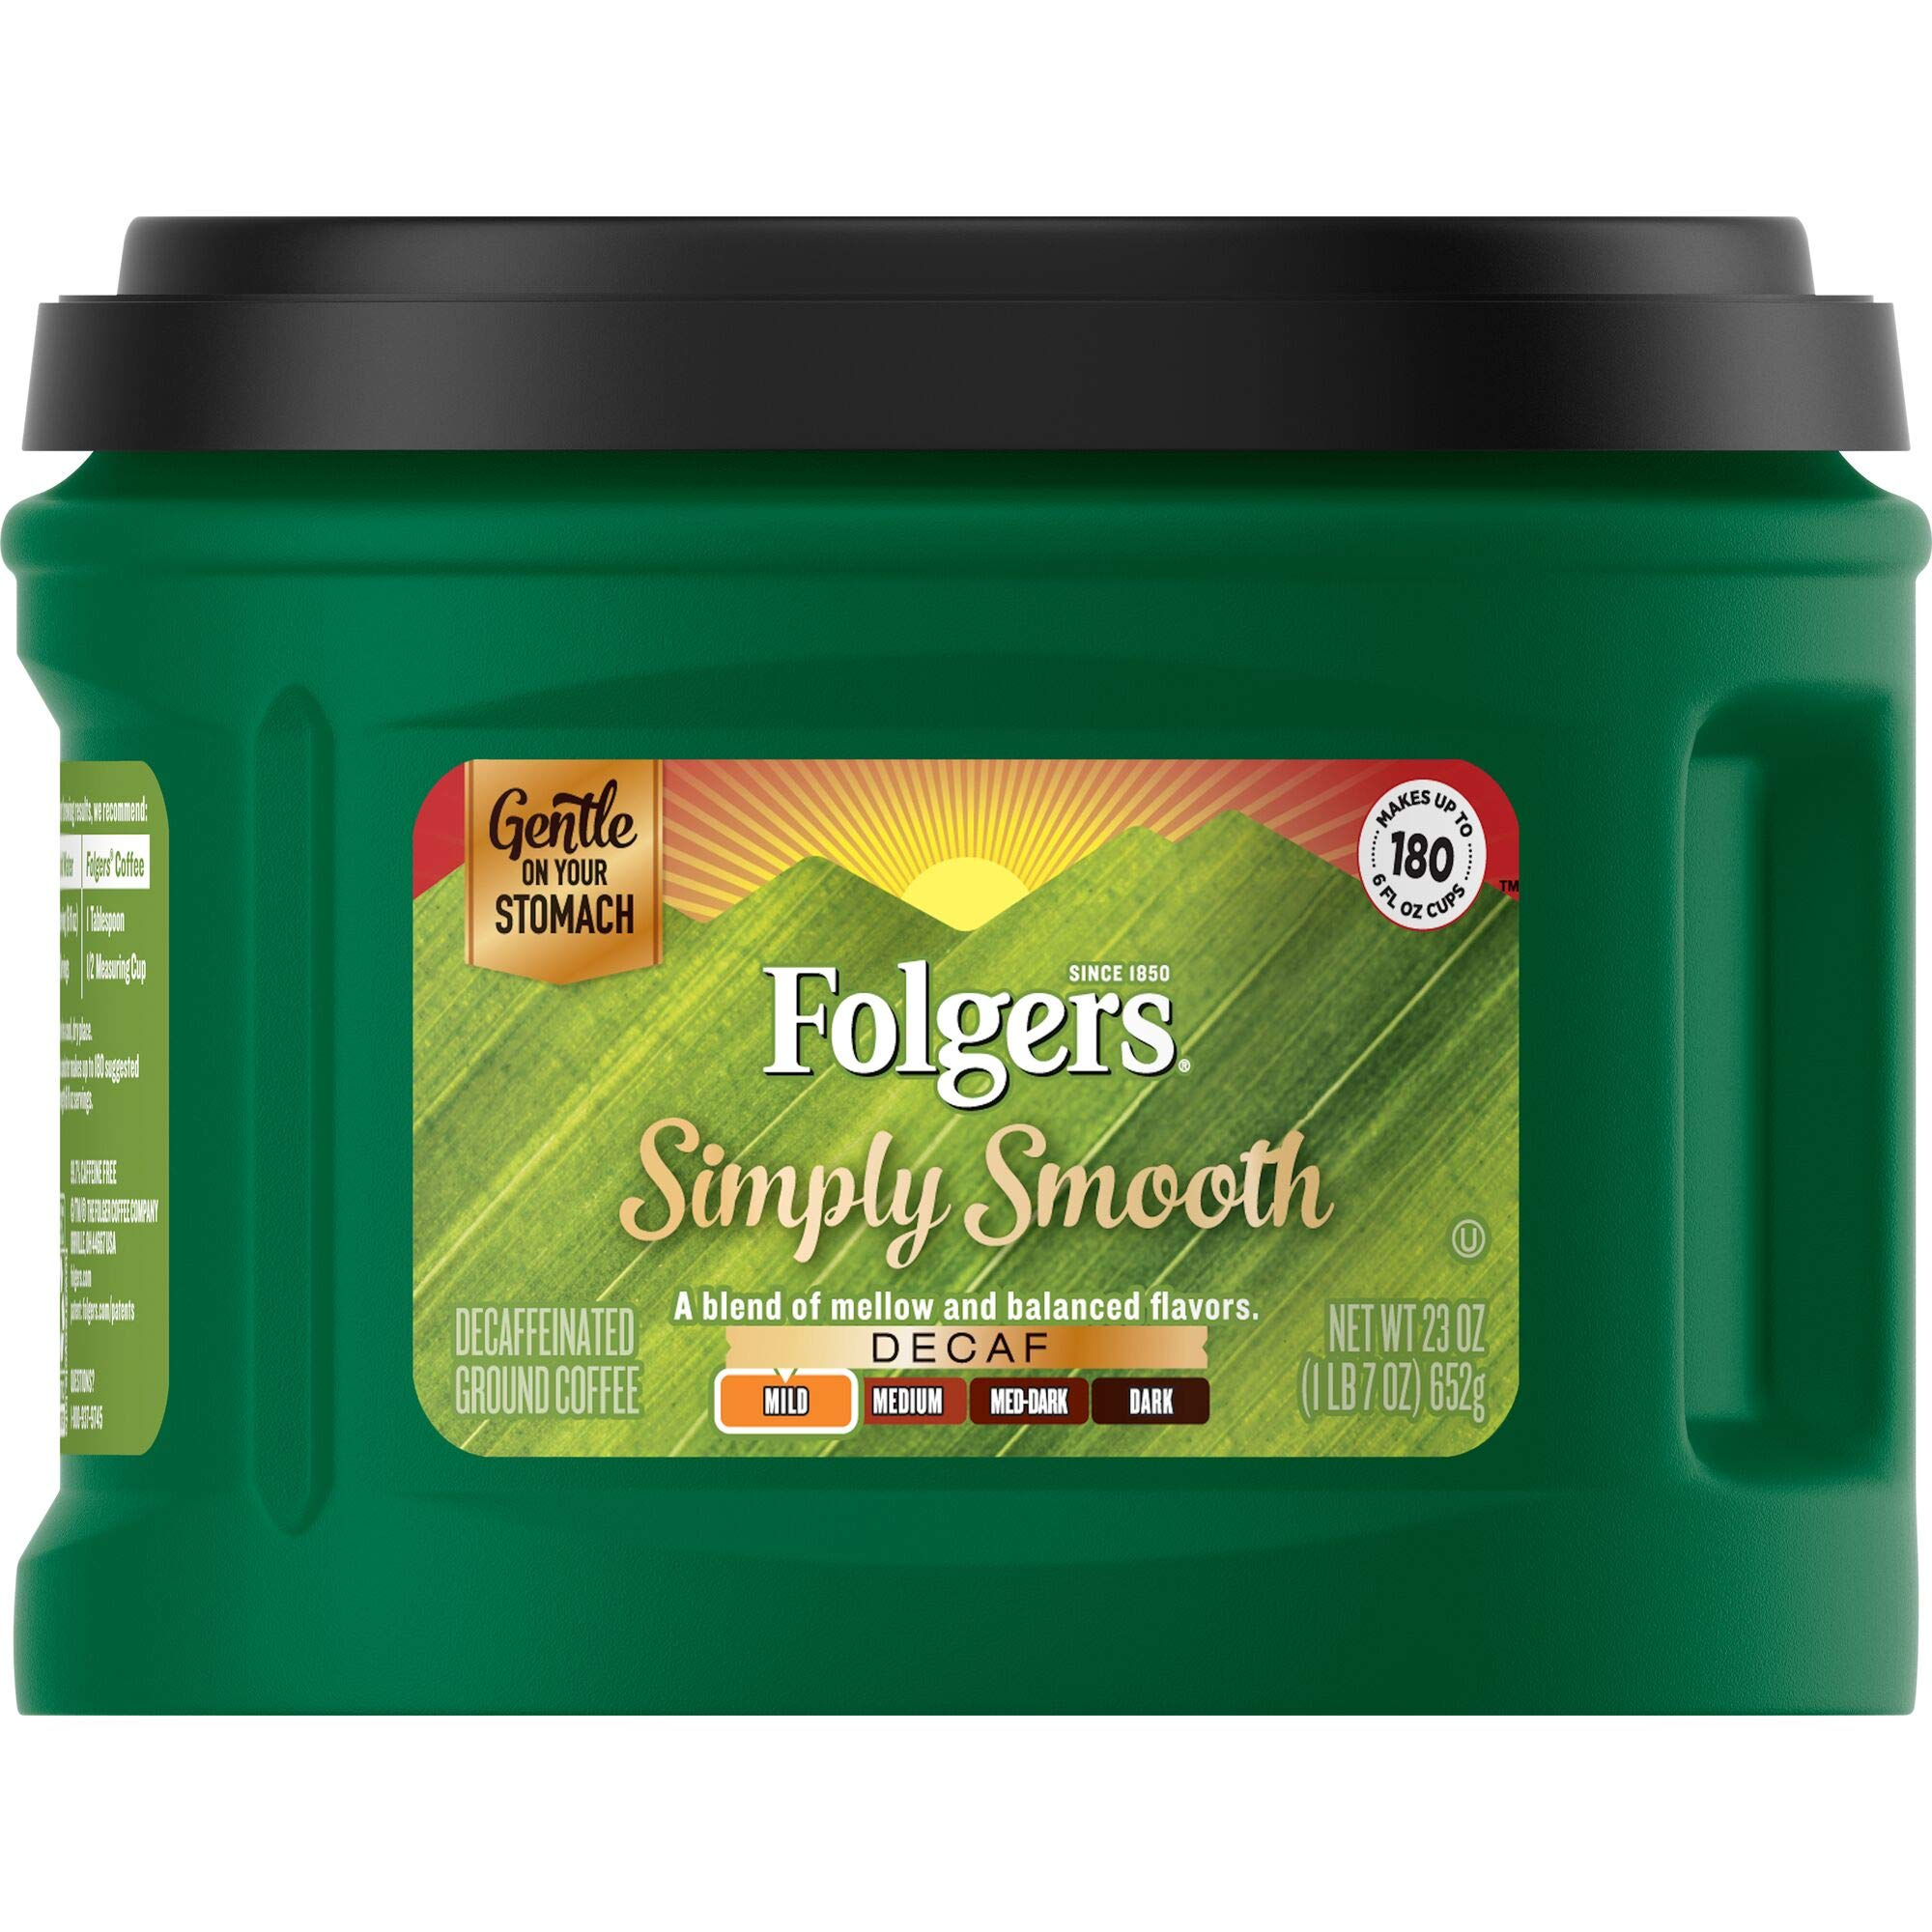 Folgers Simply Smooth Decaf Ground Coffee, Mild Roast, 23 Ounce (Pack of 6), Packaging May Vary by Folgers